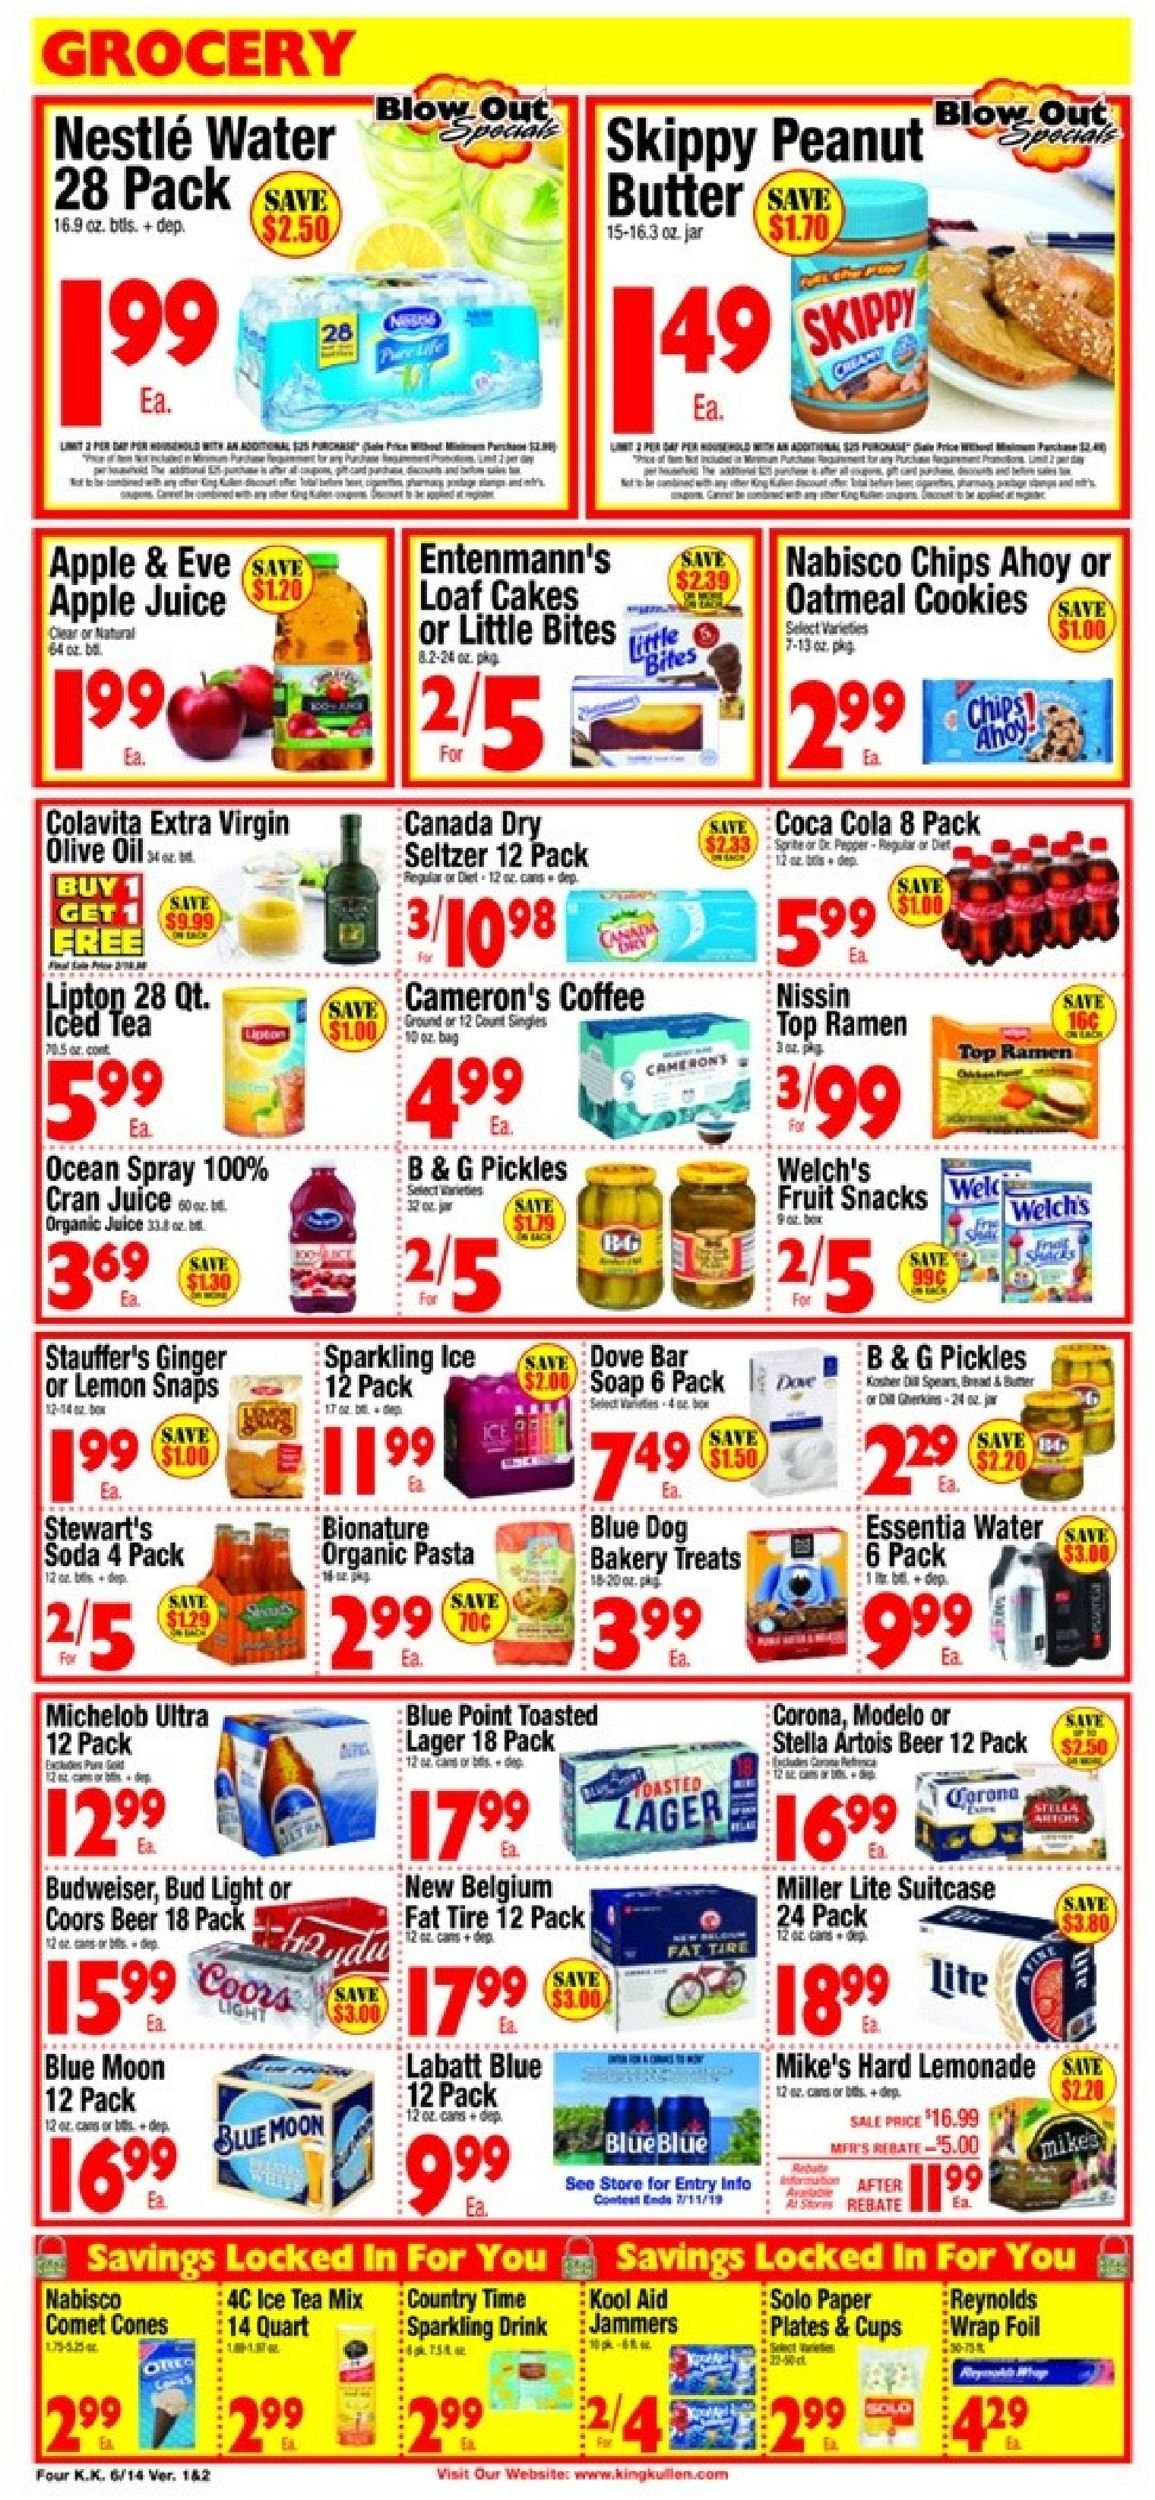 King Kullen Current weekly ad 06/14 - 06/20/2019 [4] - frequent-ads com